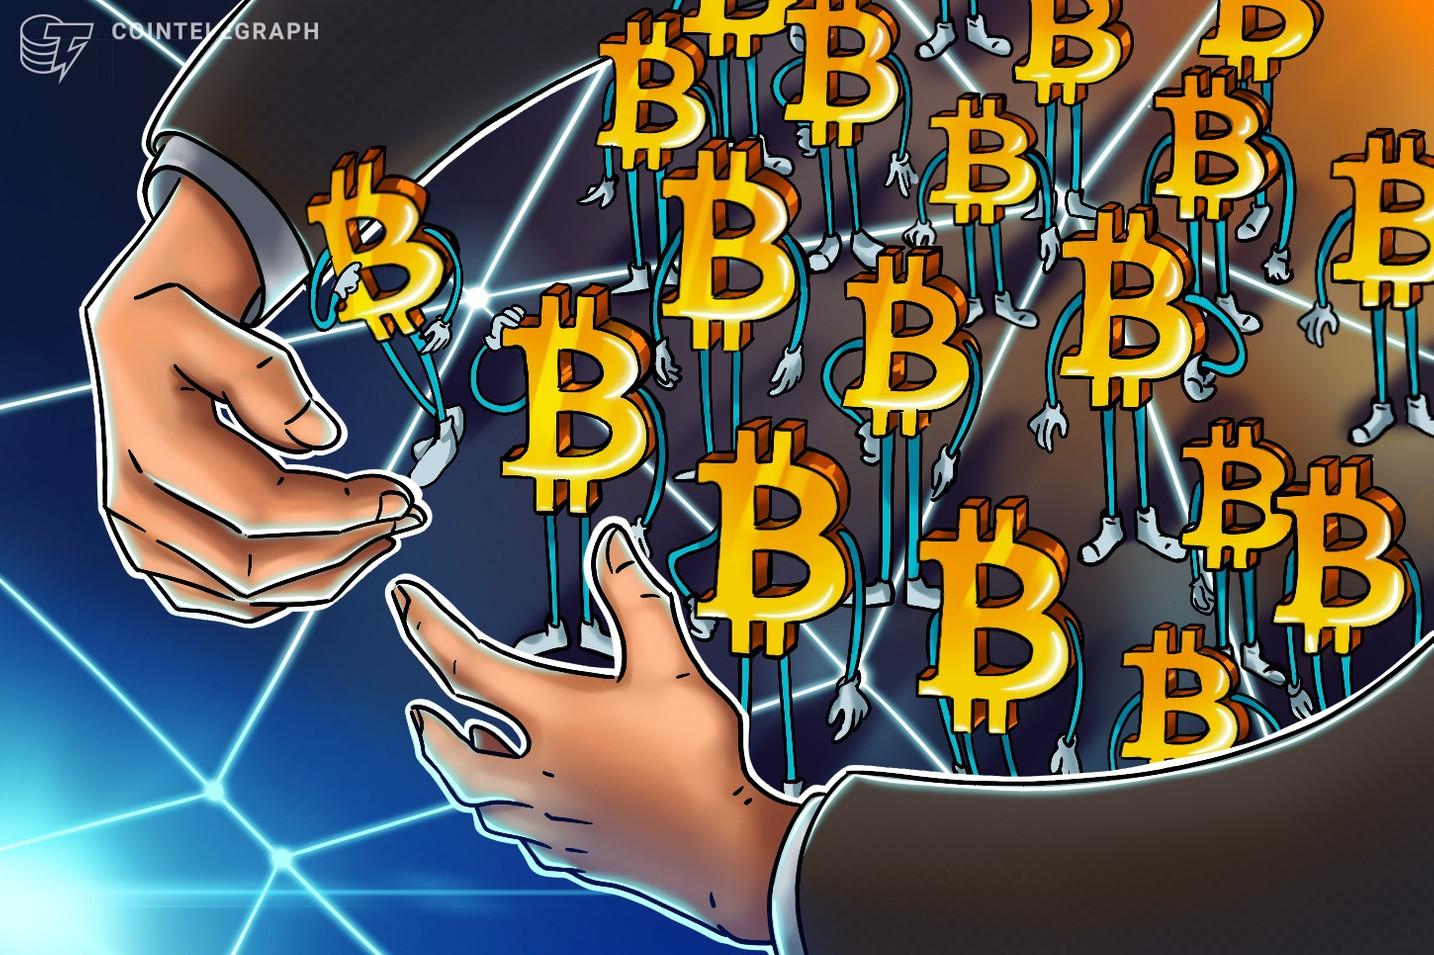 Grayscale CEO: Firms race to buy Bitcoin as mood shifts from 'why' to 'why not?'